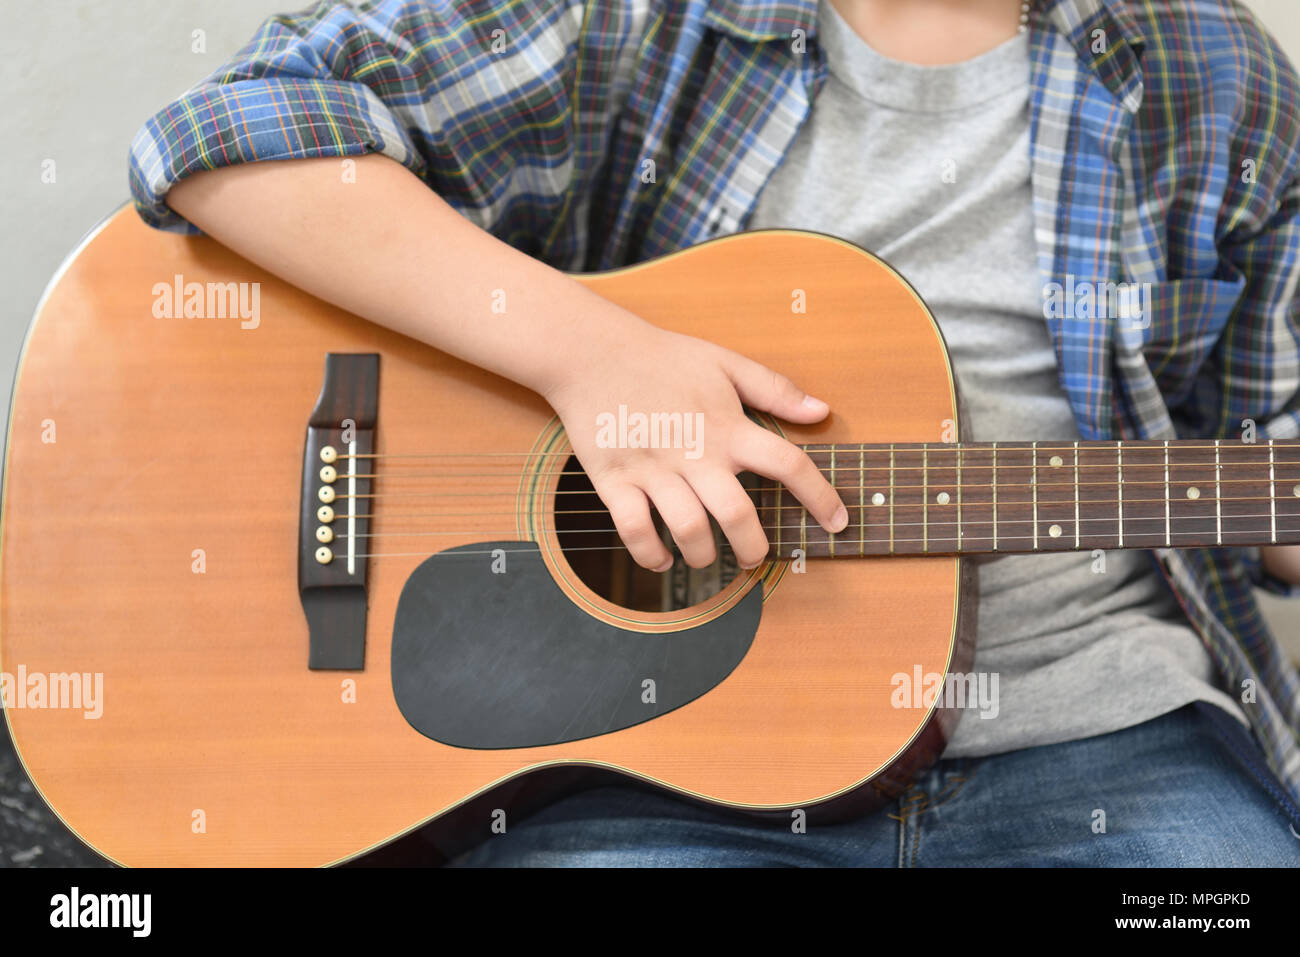 Men Use Guitar Handles To Play Guitar Chords Stock Photo 185995137